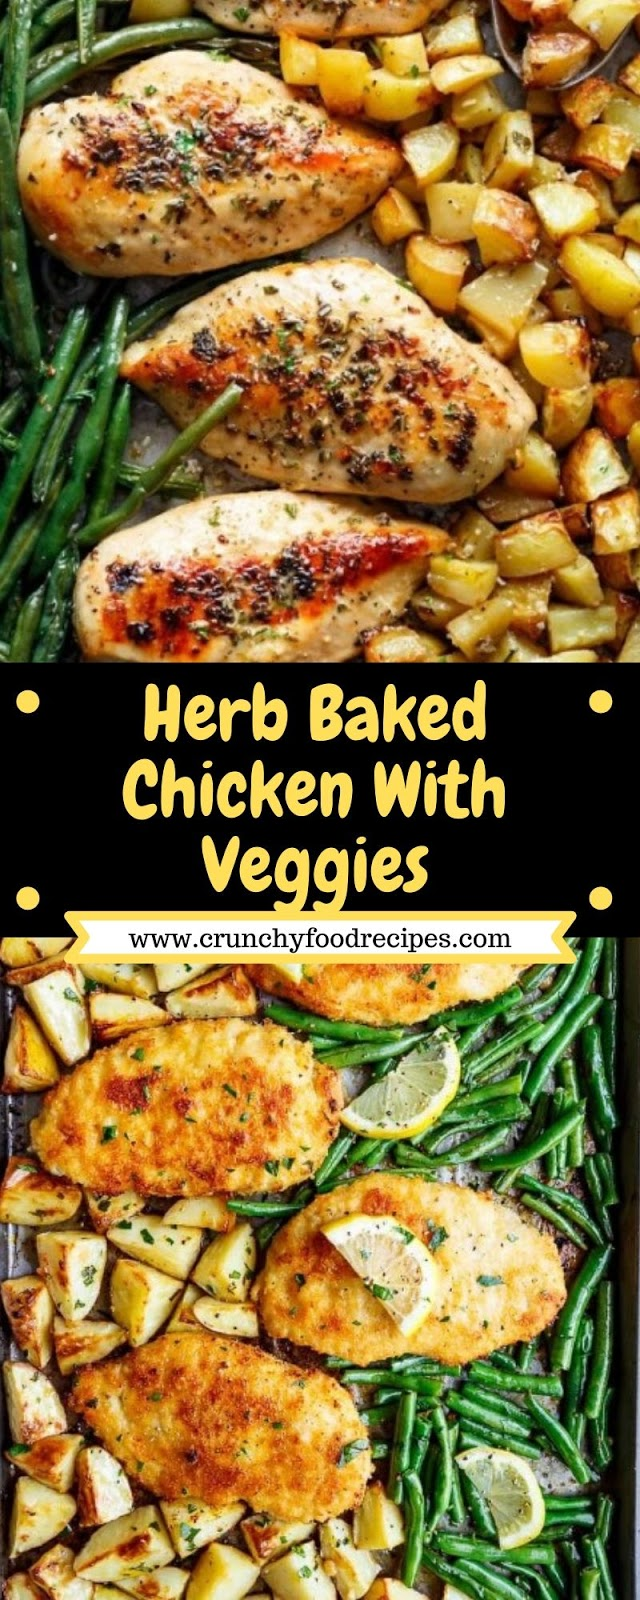 Herb Baked Chicken With Veggies